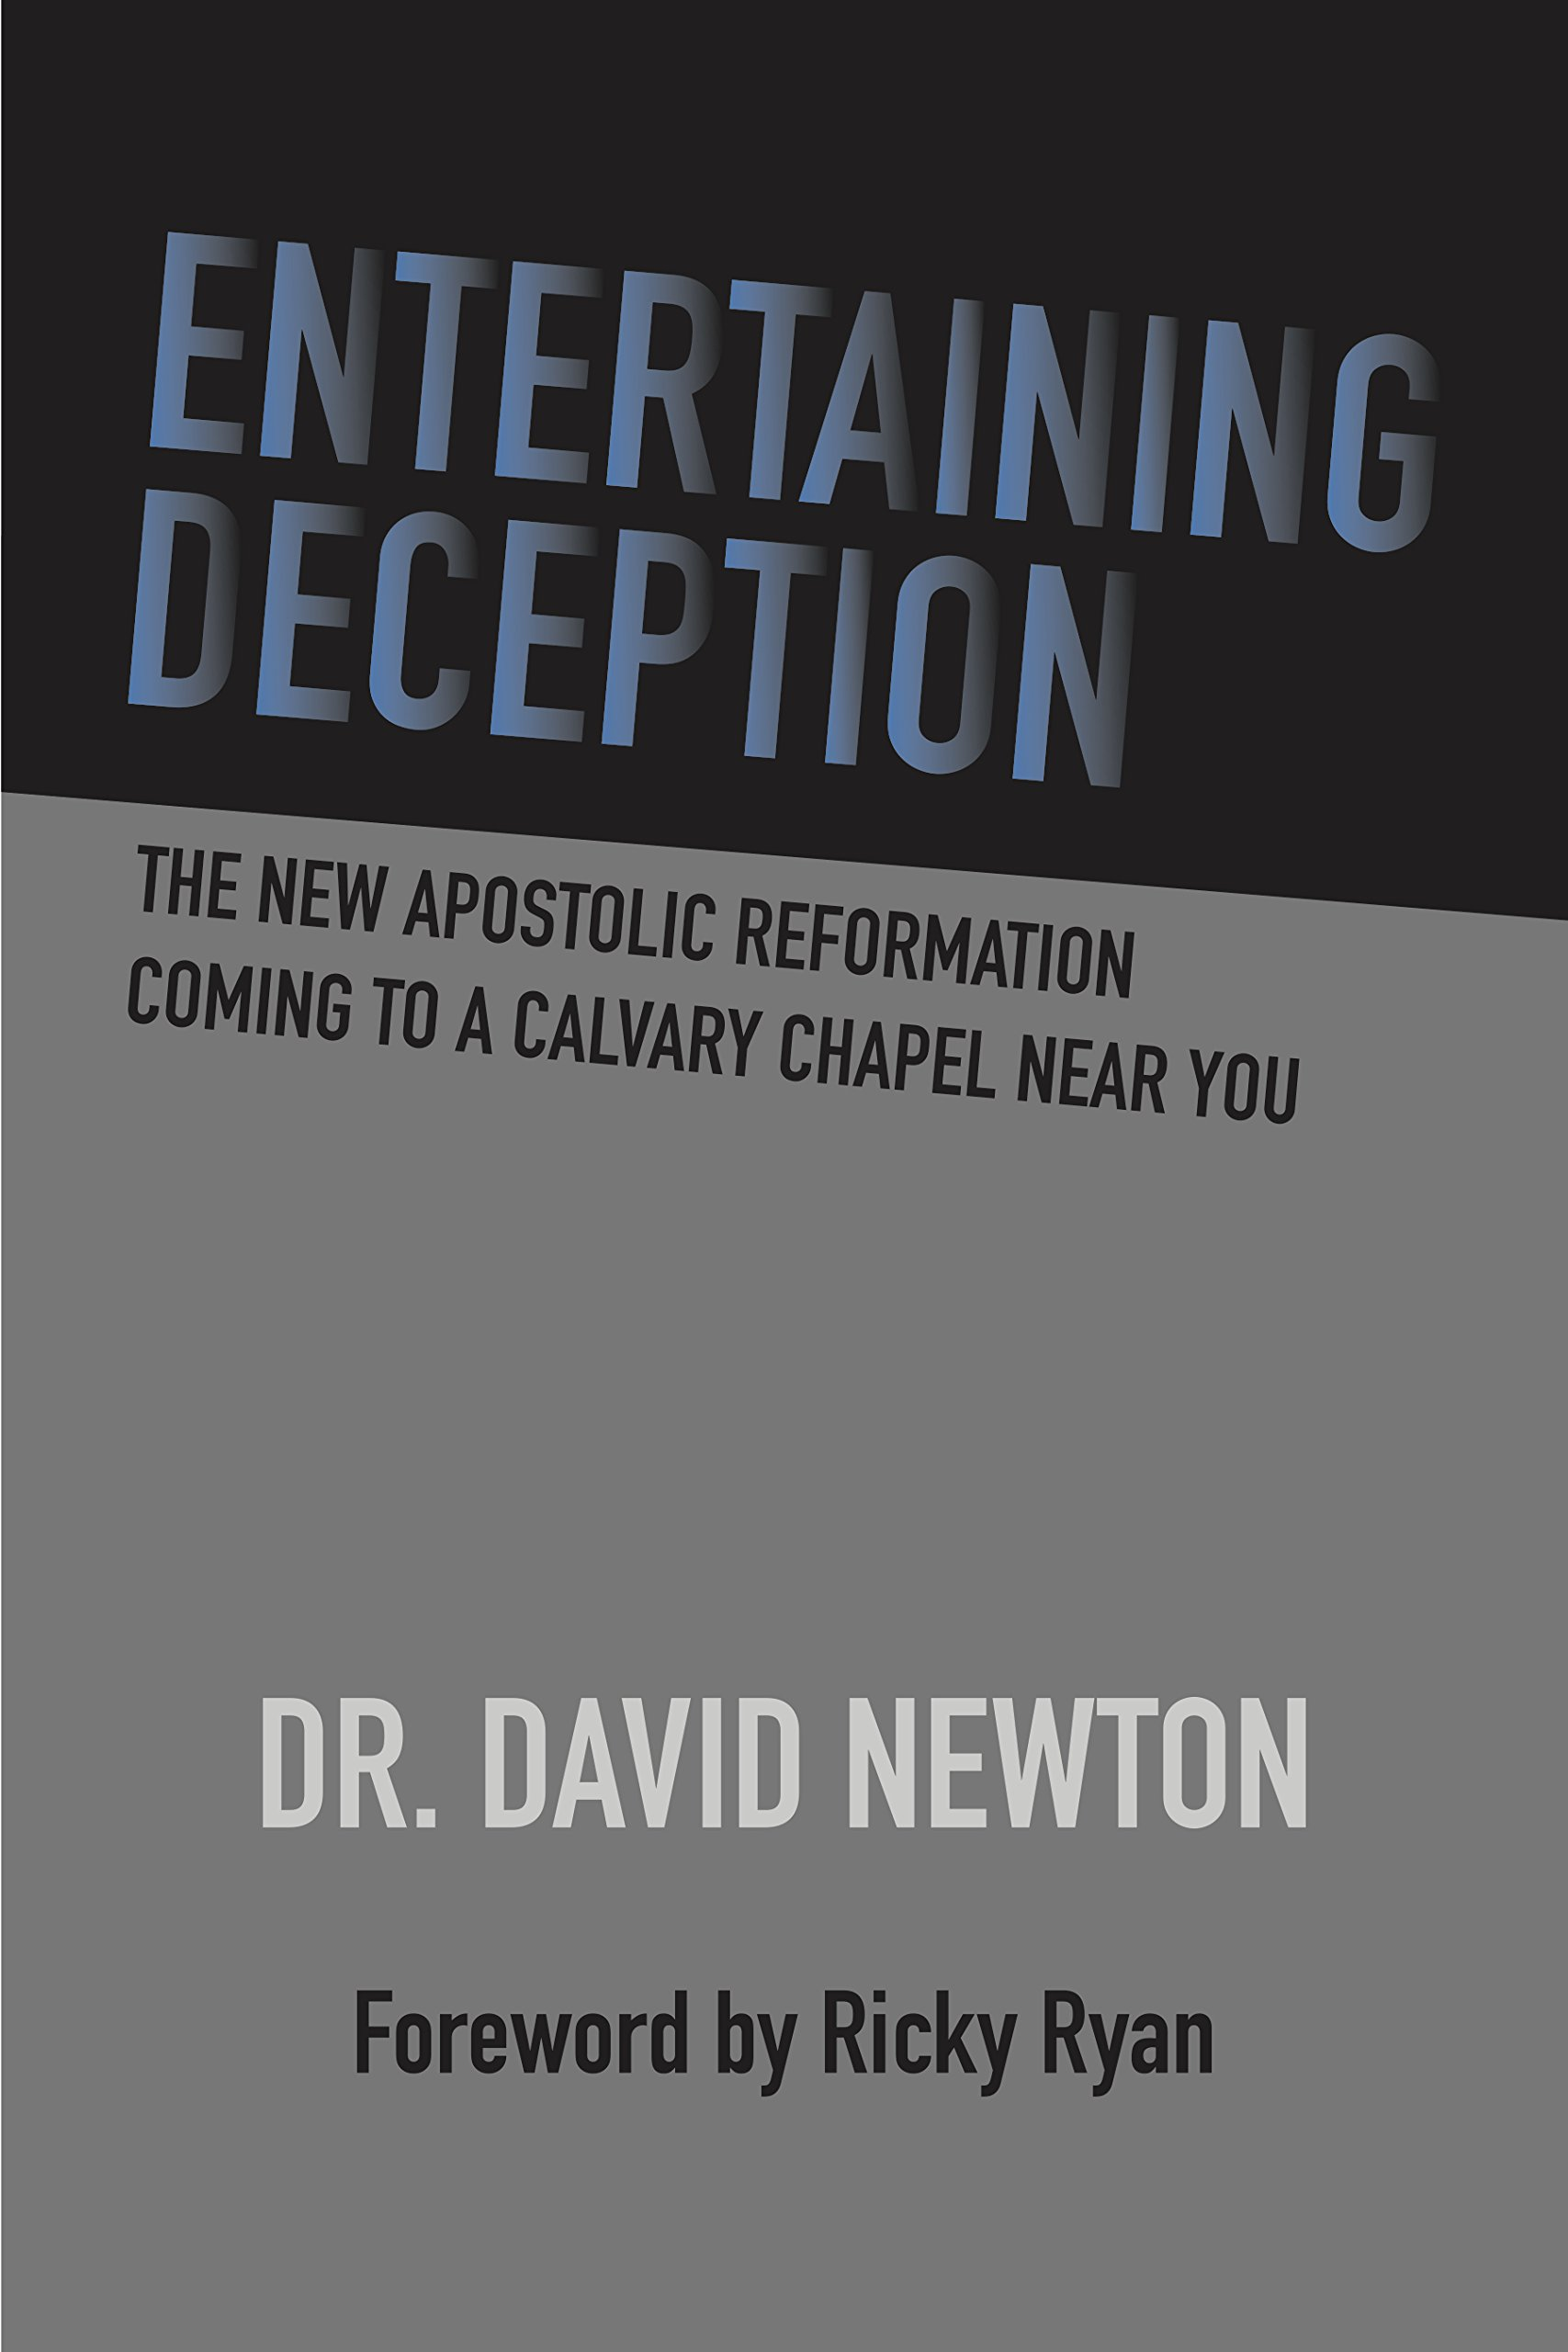 Download Entertaining Deception: The New Apostolic Reformation Coming To A Calvary Chapel Near You ebook